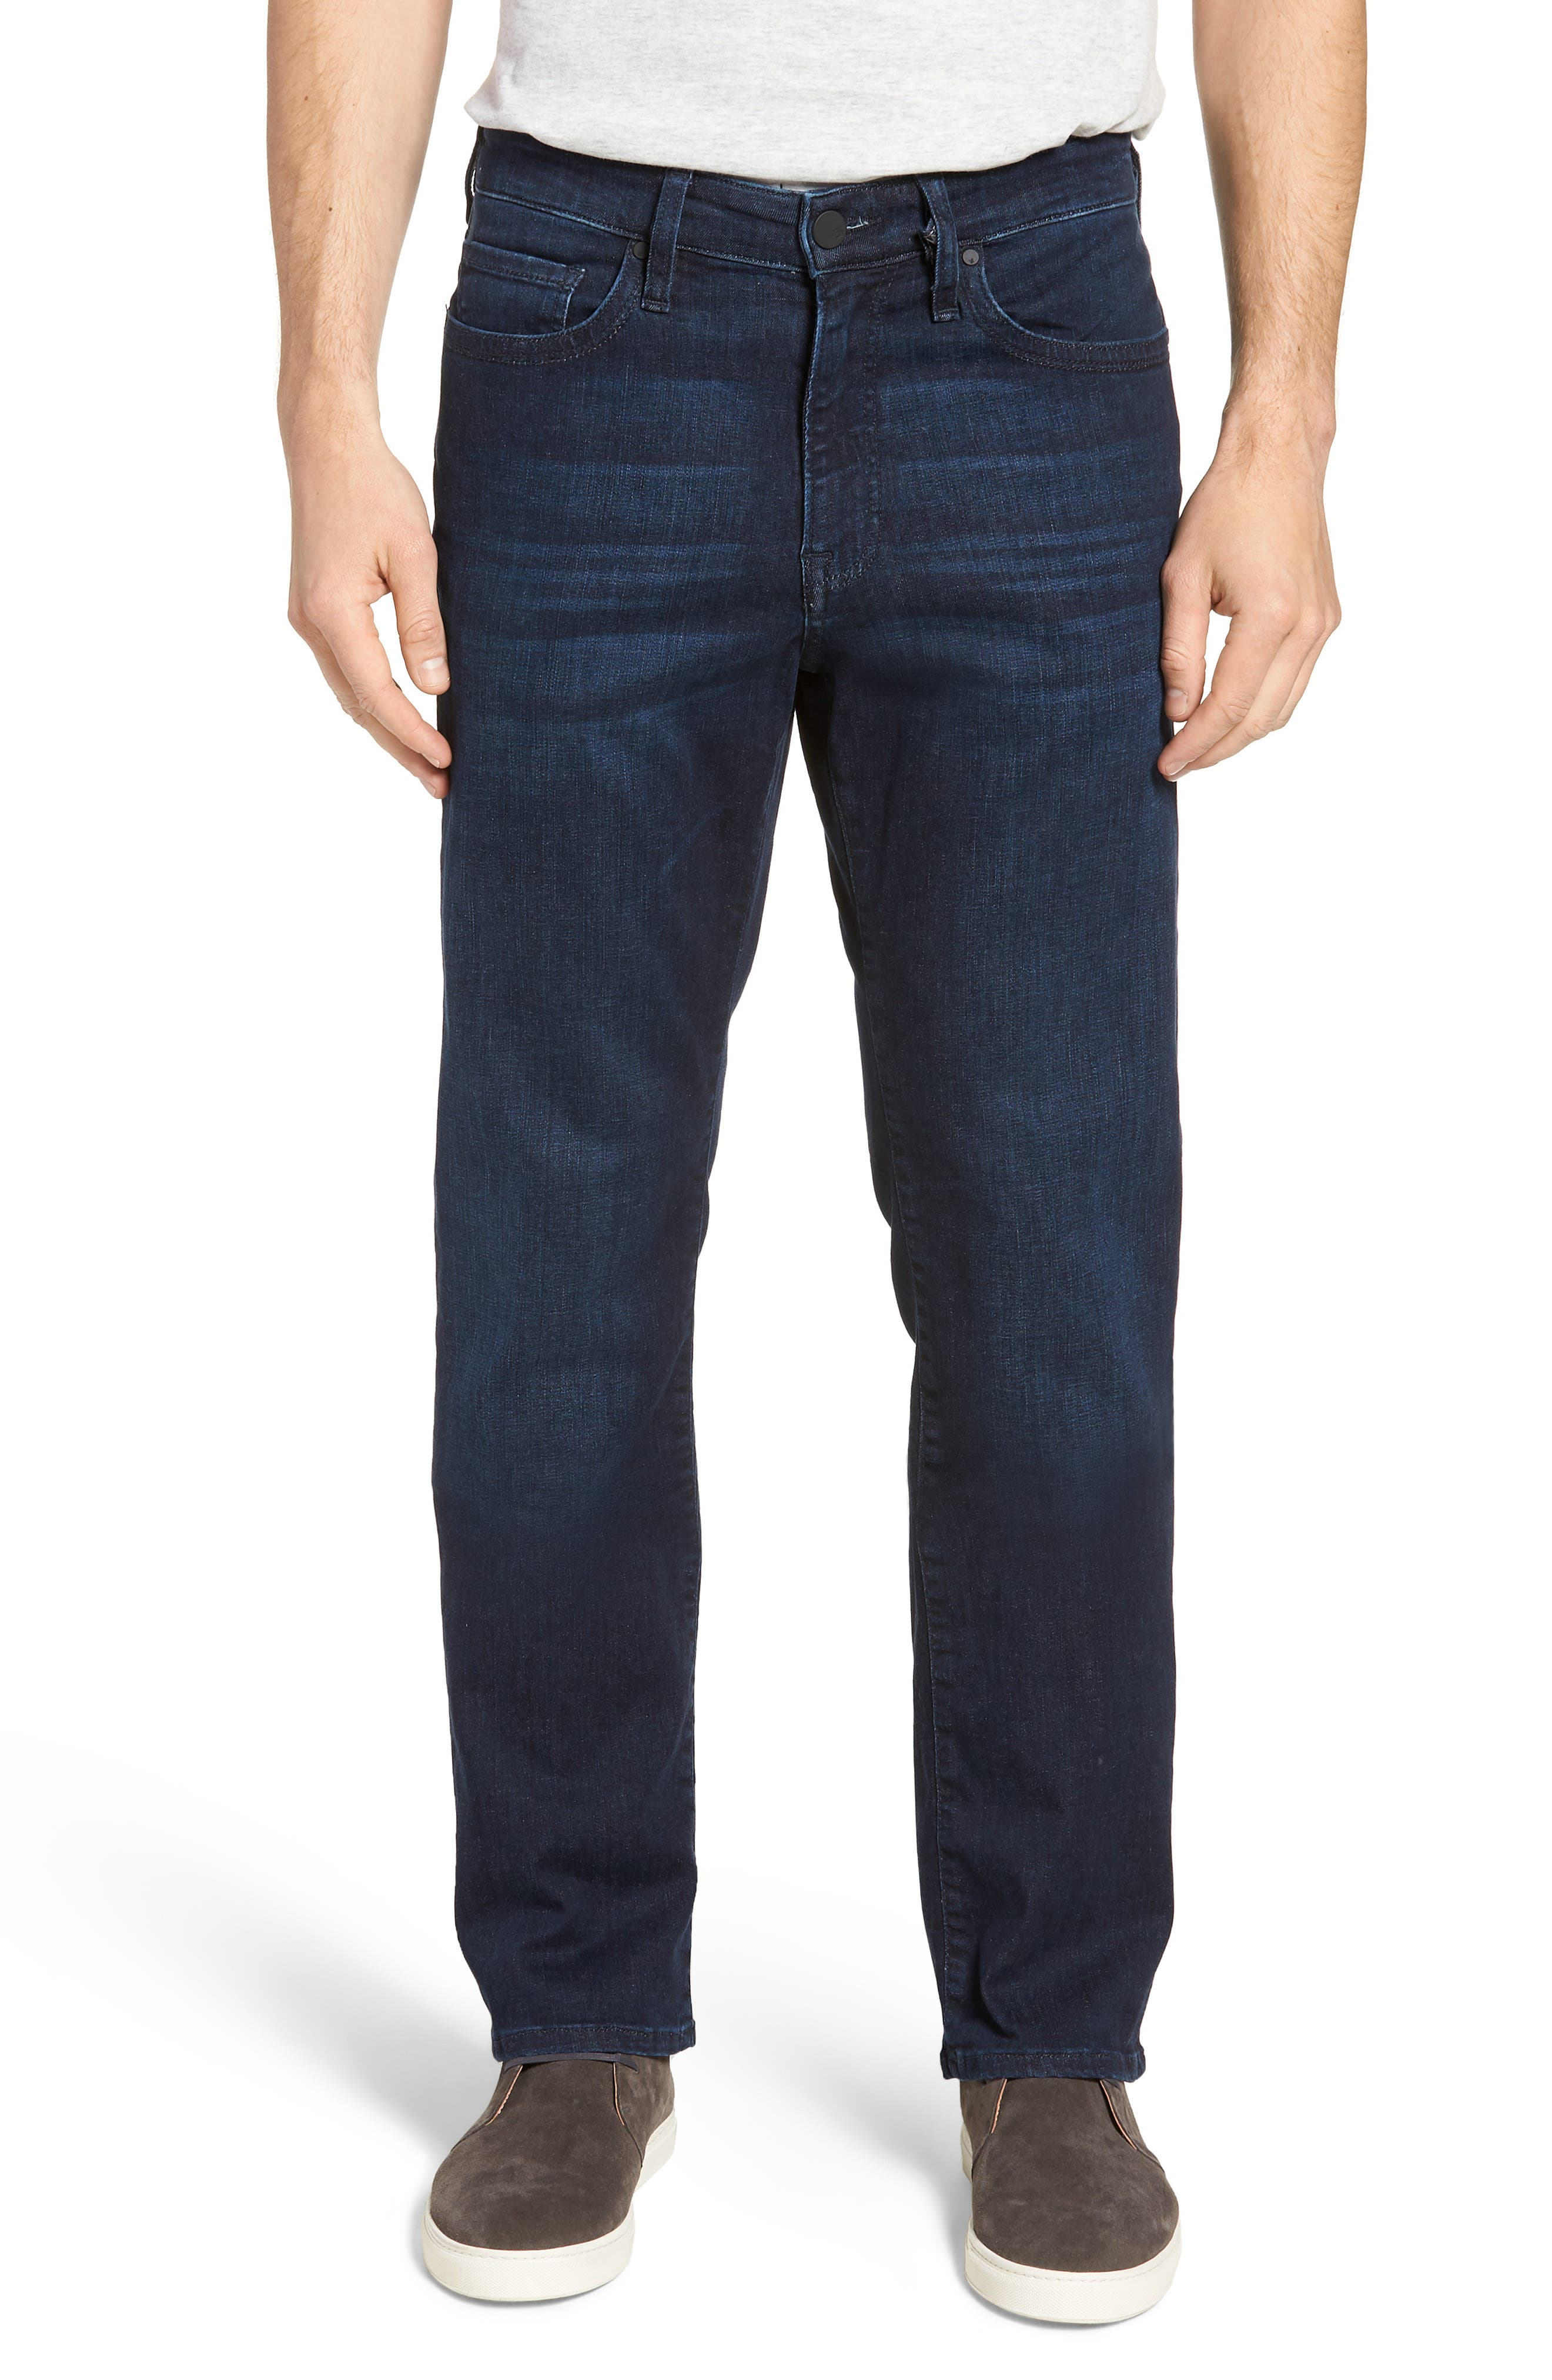 Charisma Relaxed Fit Jeans,                         Main,                         color,